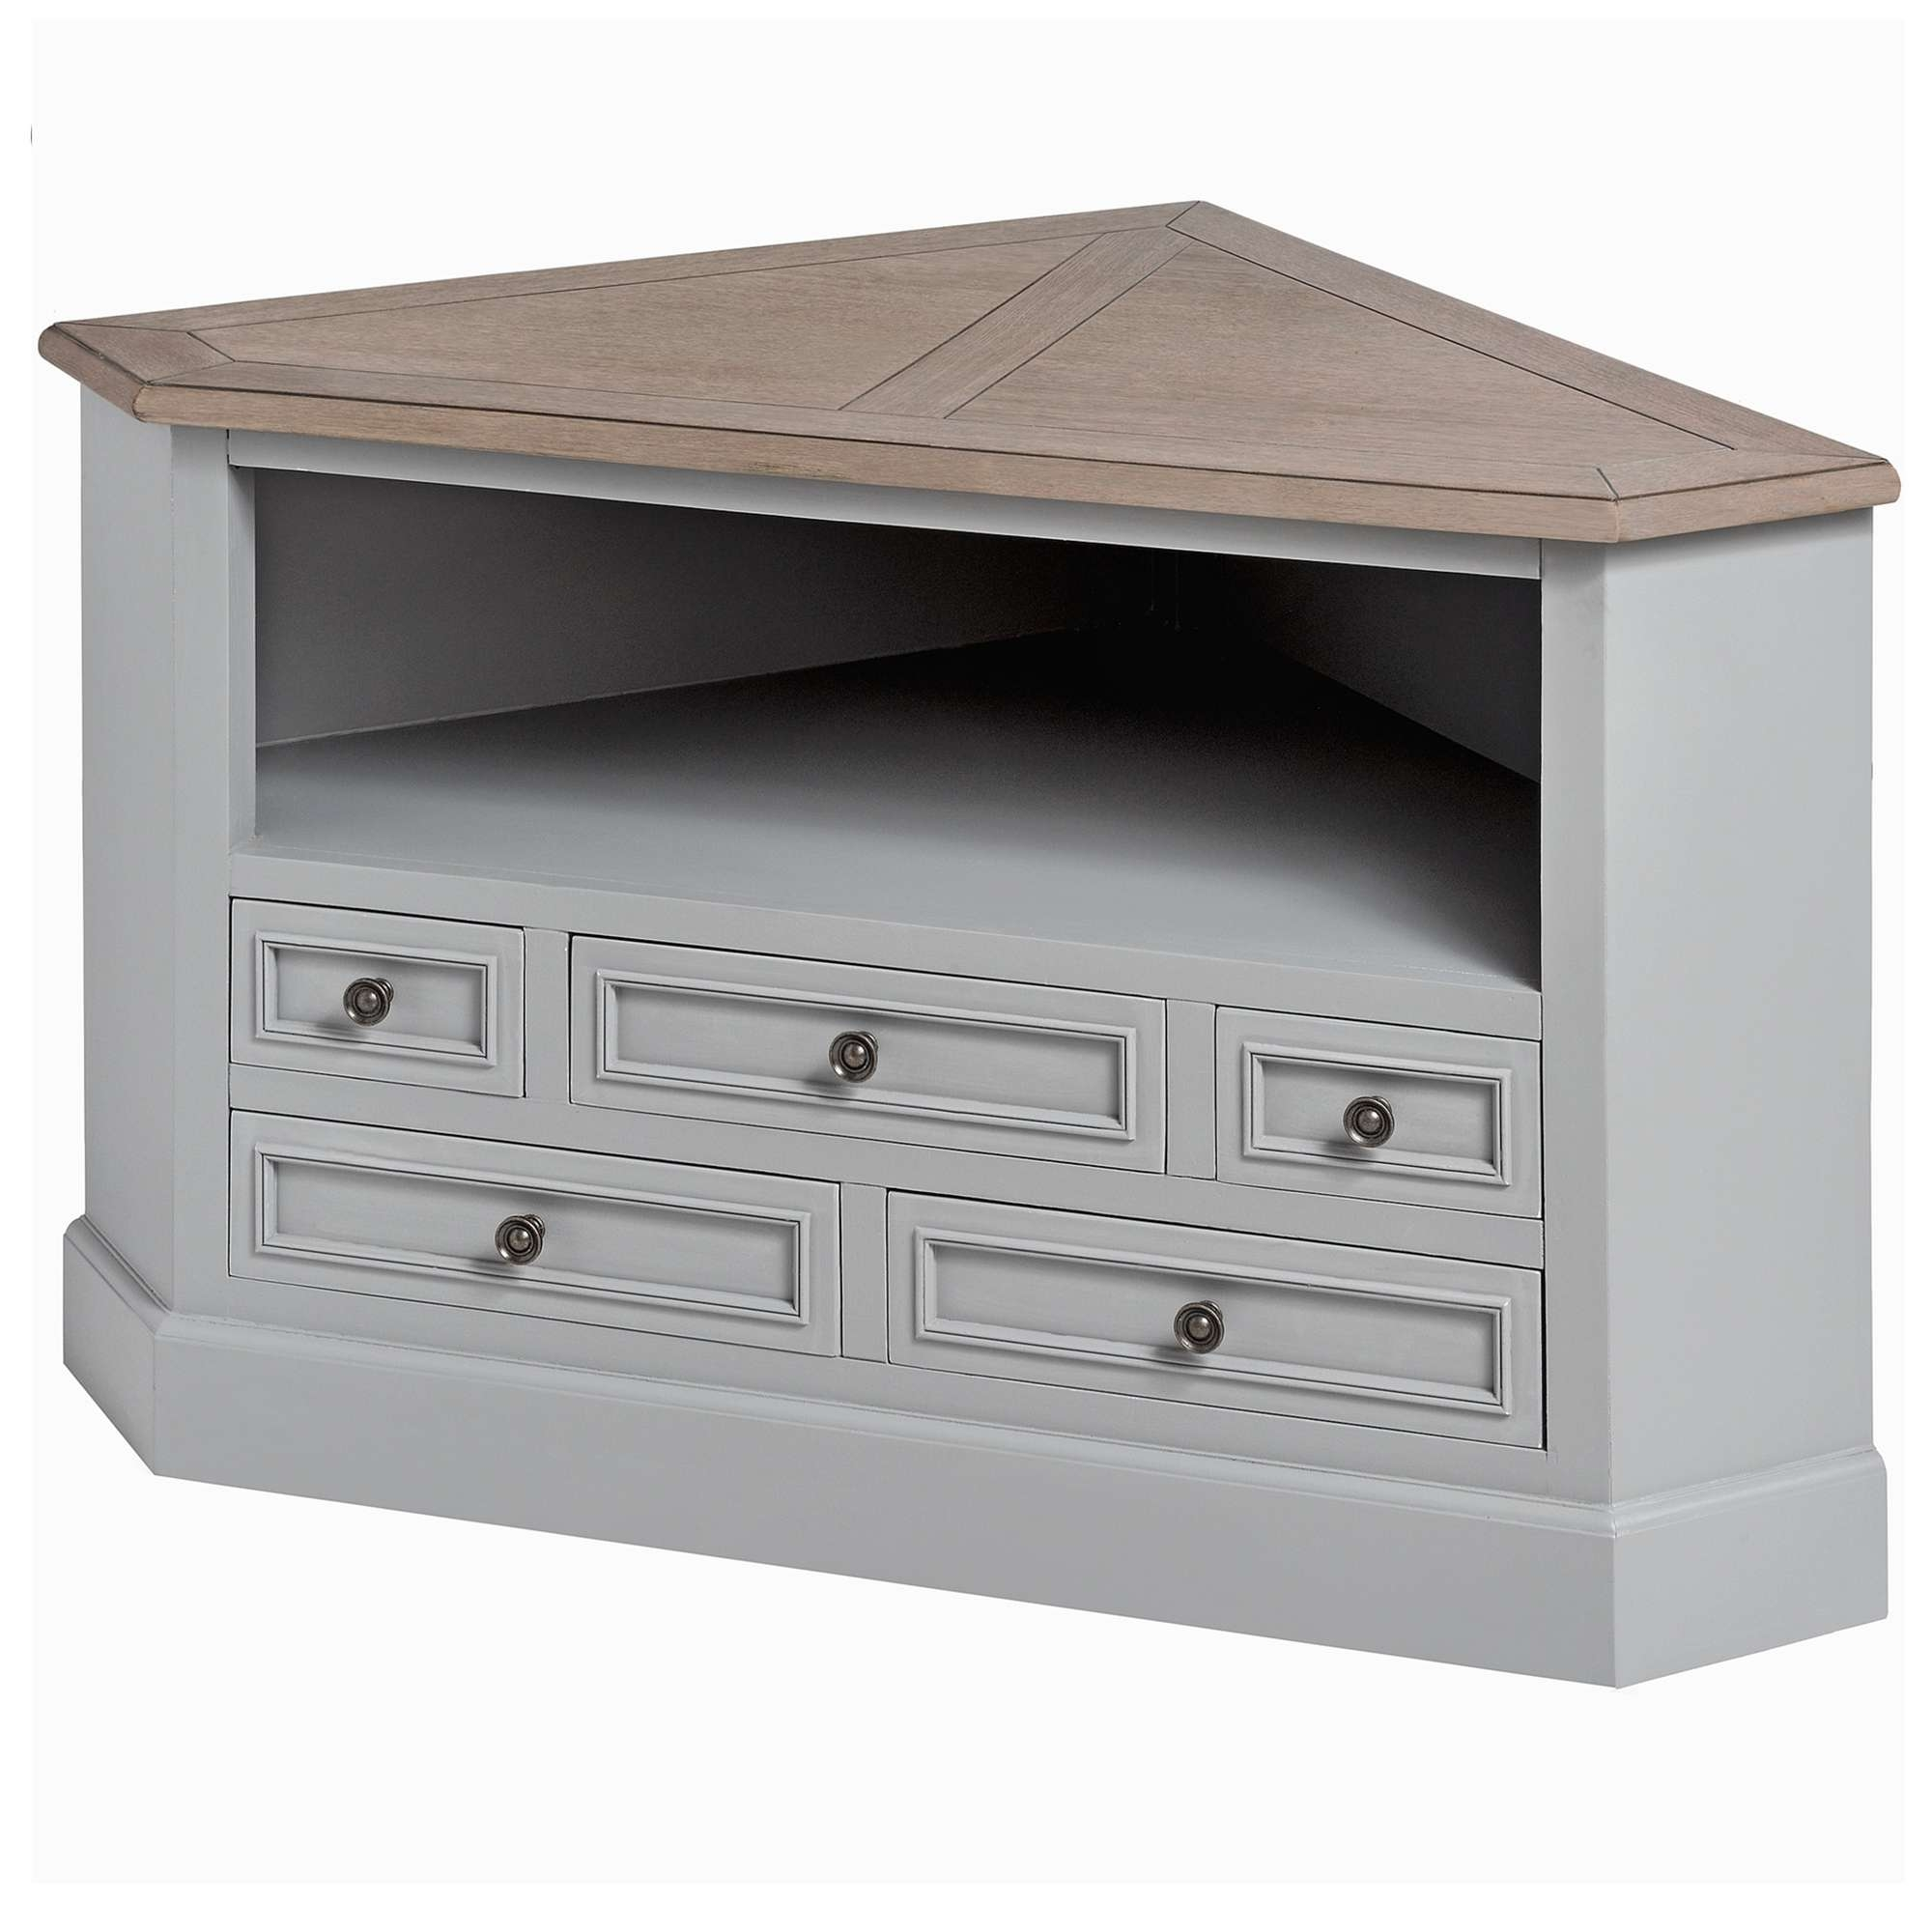 Churchill Shabby Chic Tv Cabinet | Available Online Now Intended For Shabby Chic Tv Cabinets (View 6 of 20)